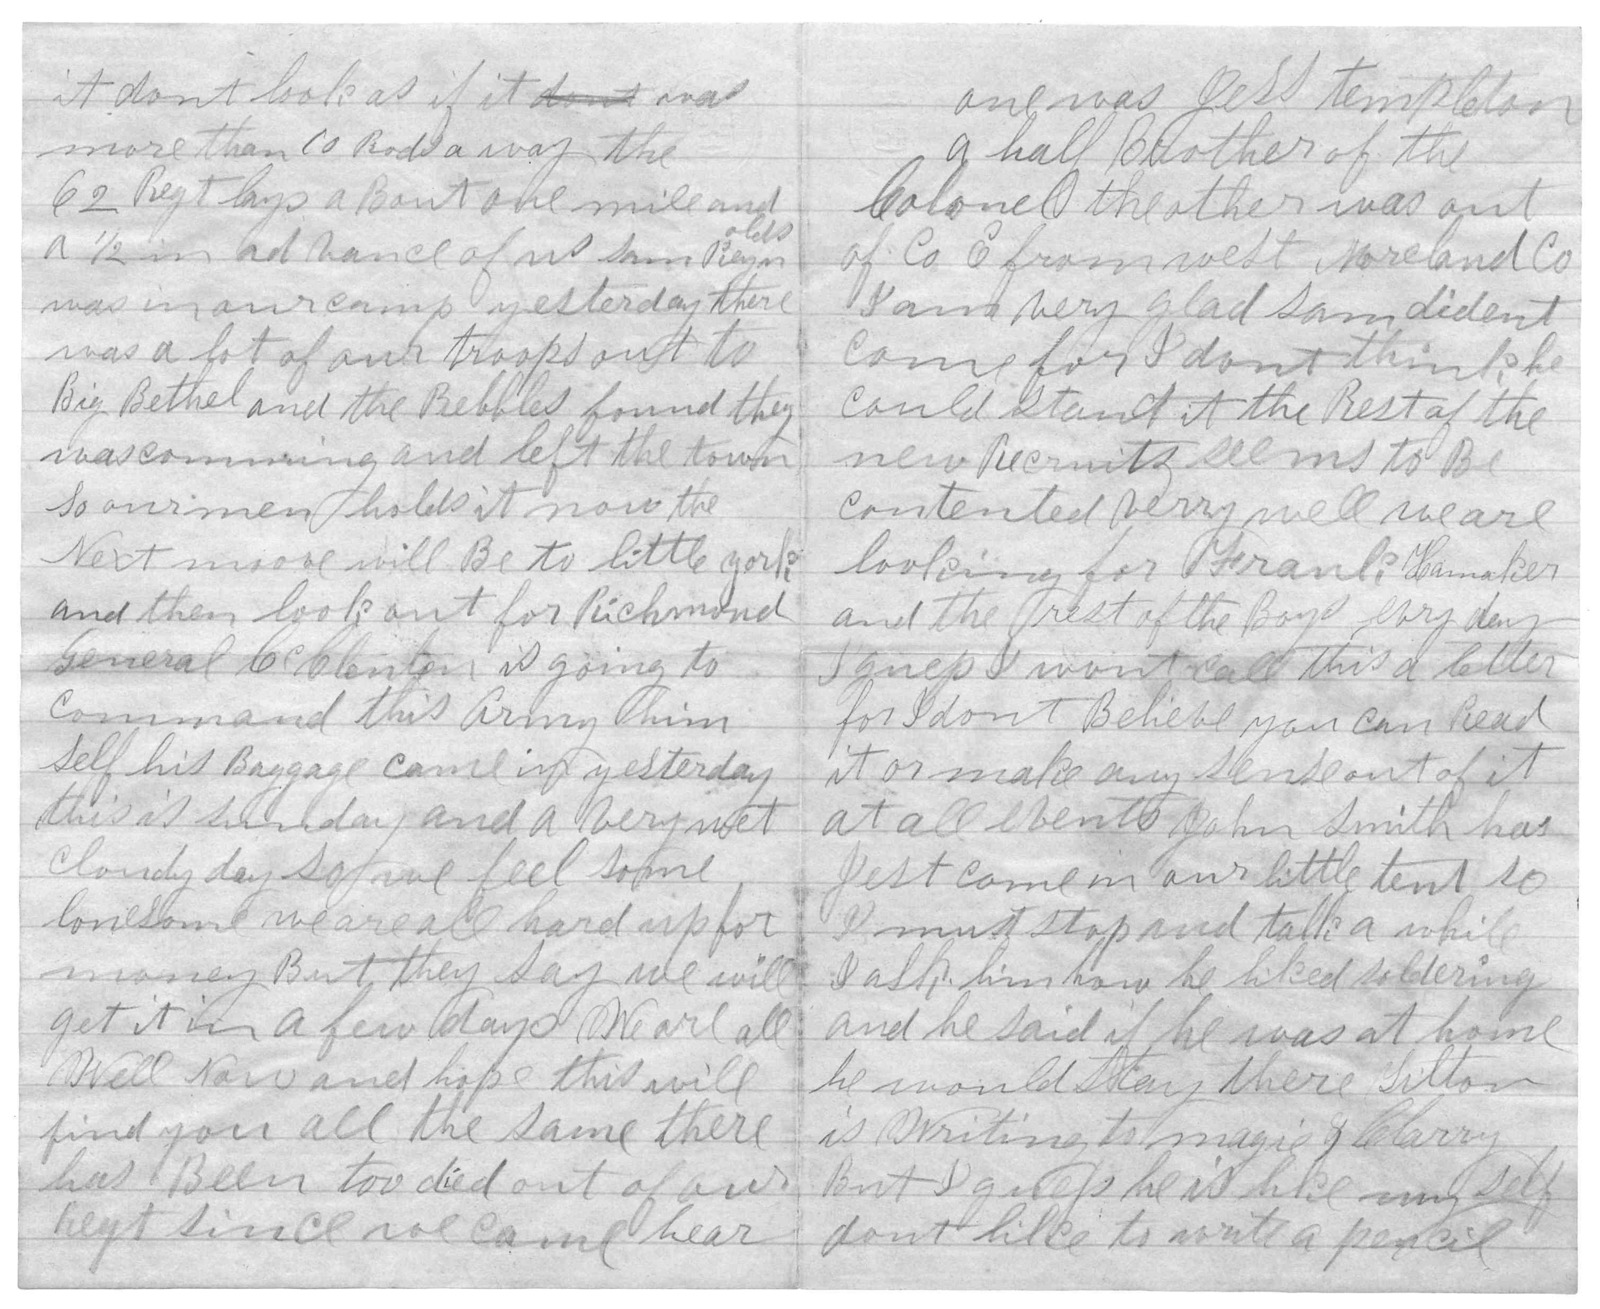 Letter from Joseph F. Green to Juliana Smith Reynolds, March 31, 1862